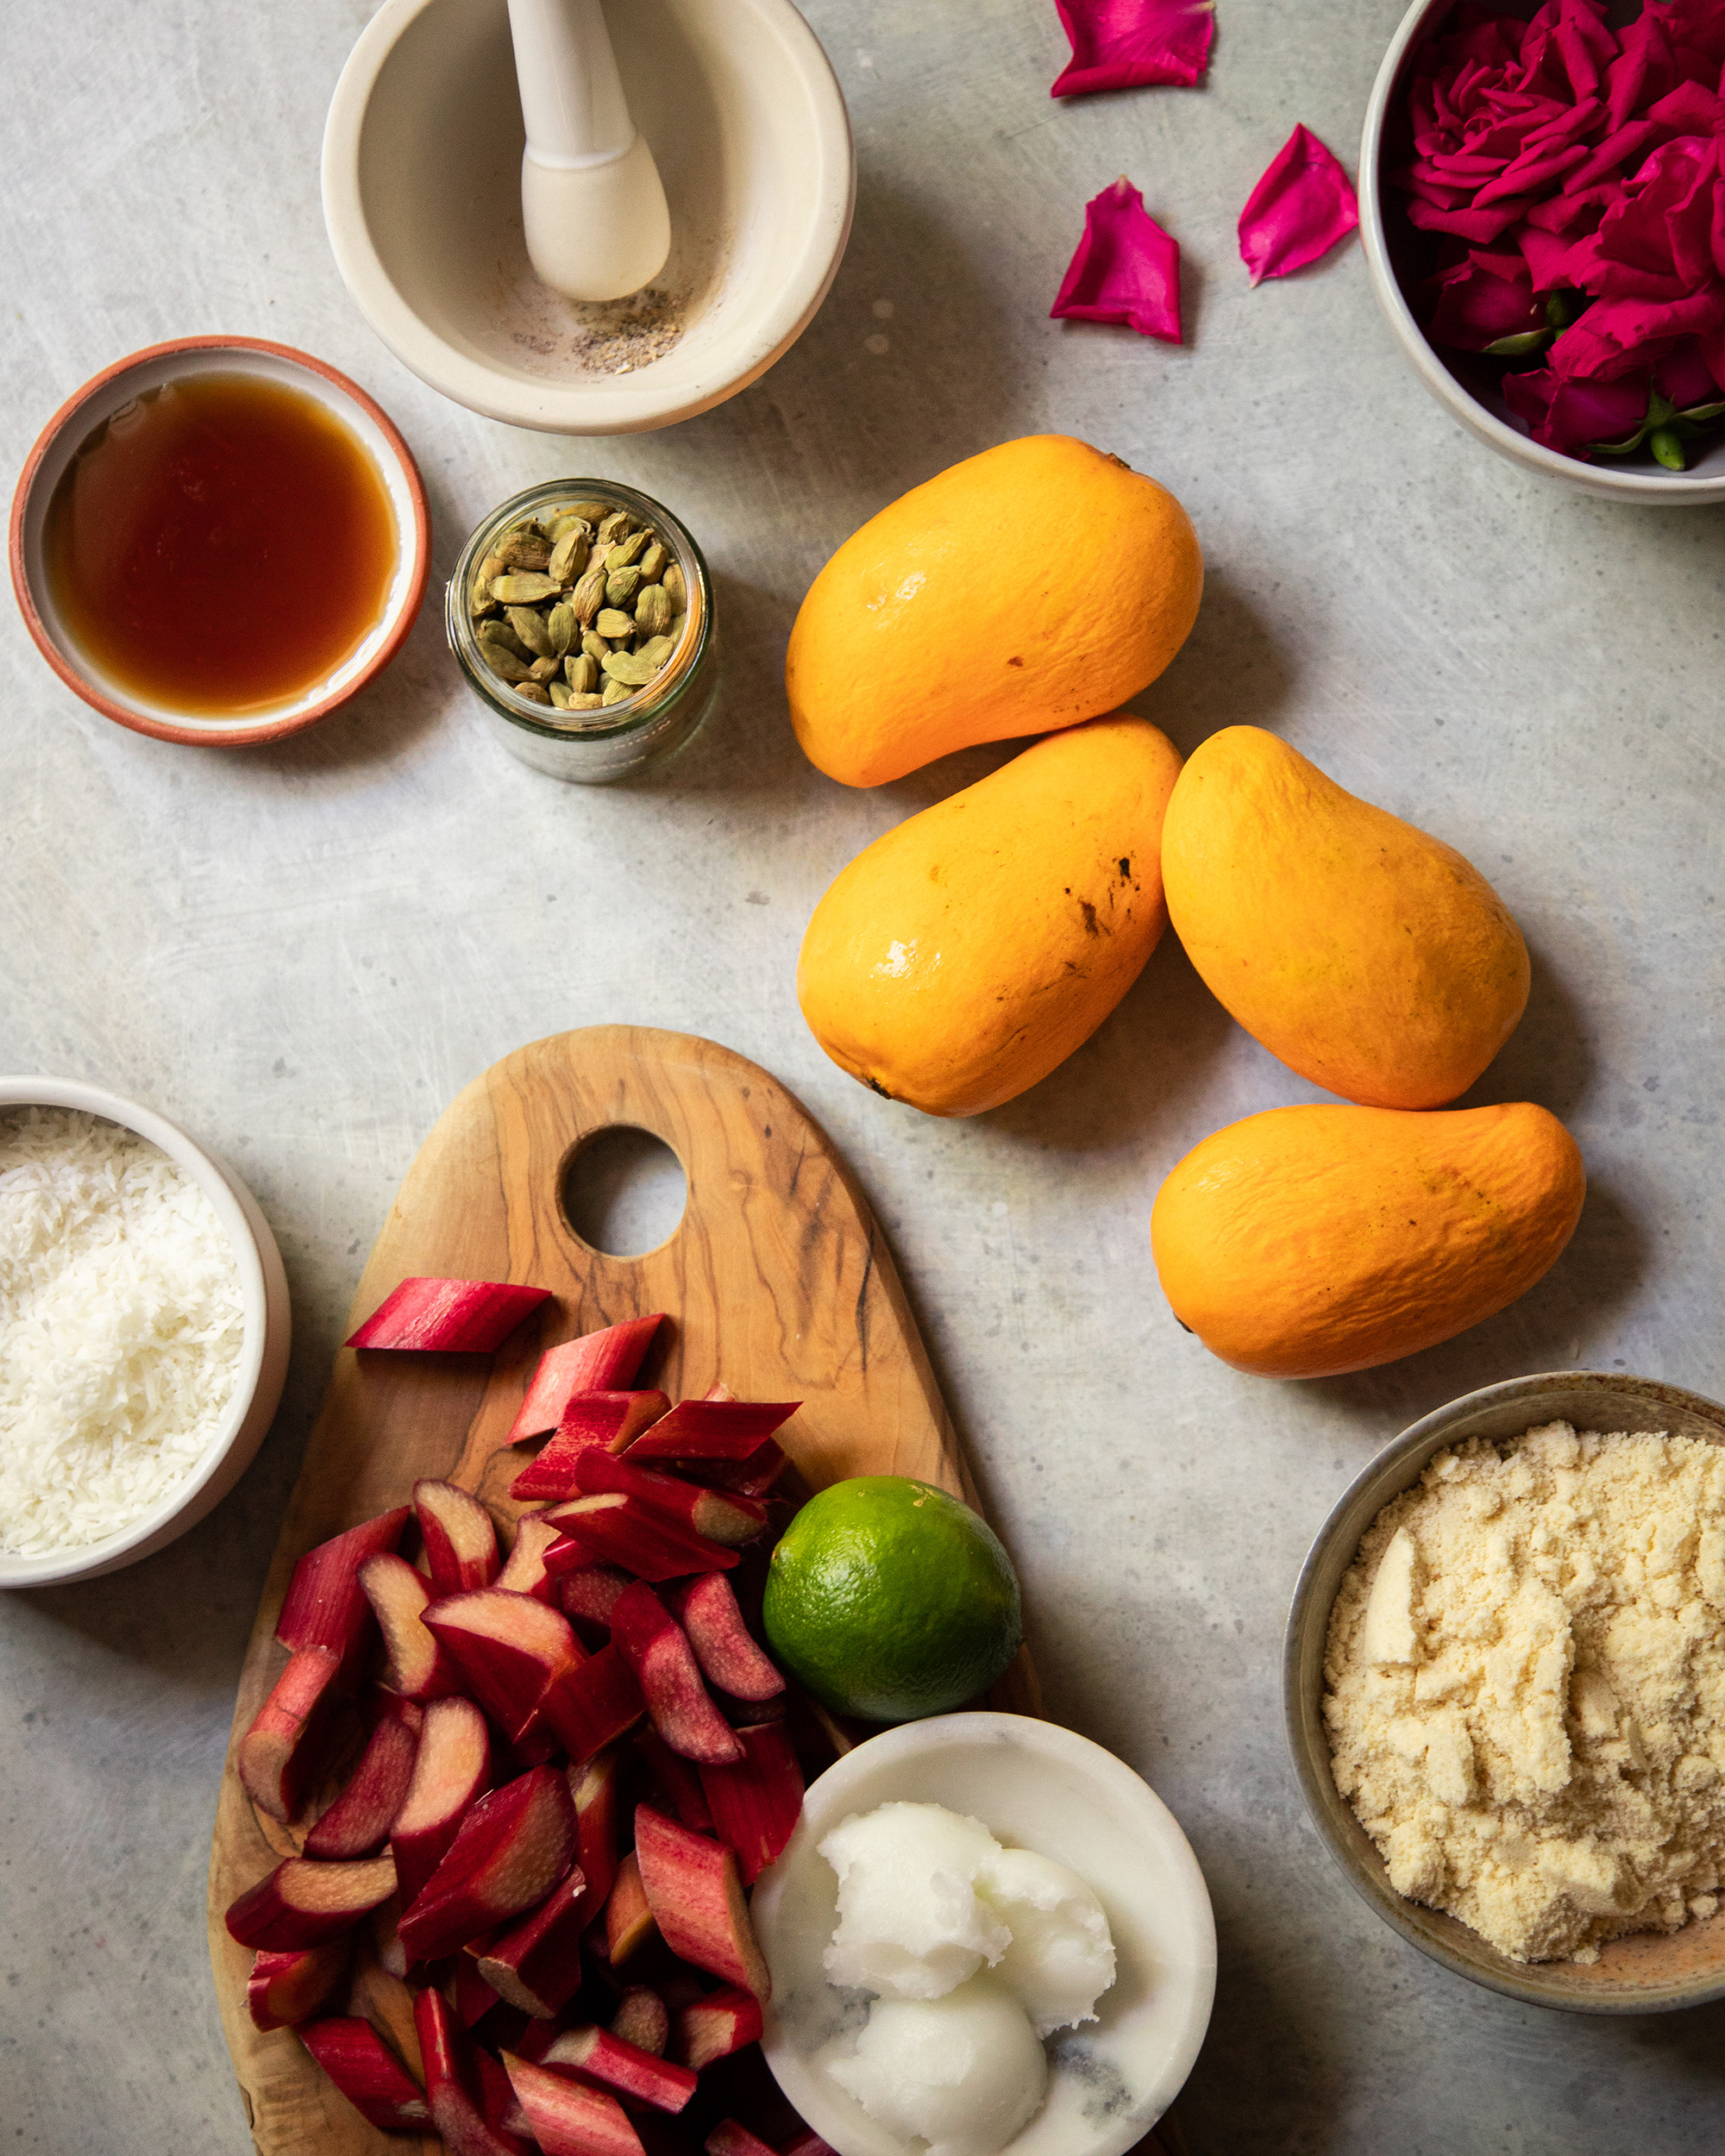 An overhead shot of ingredients for a crumble dessert.